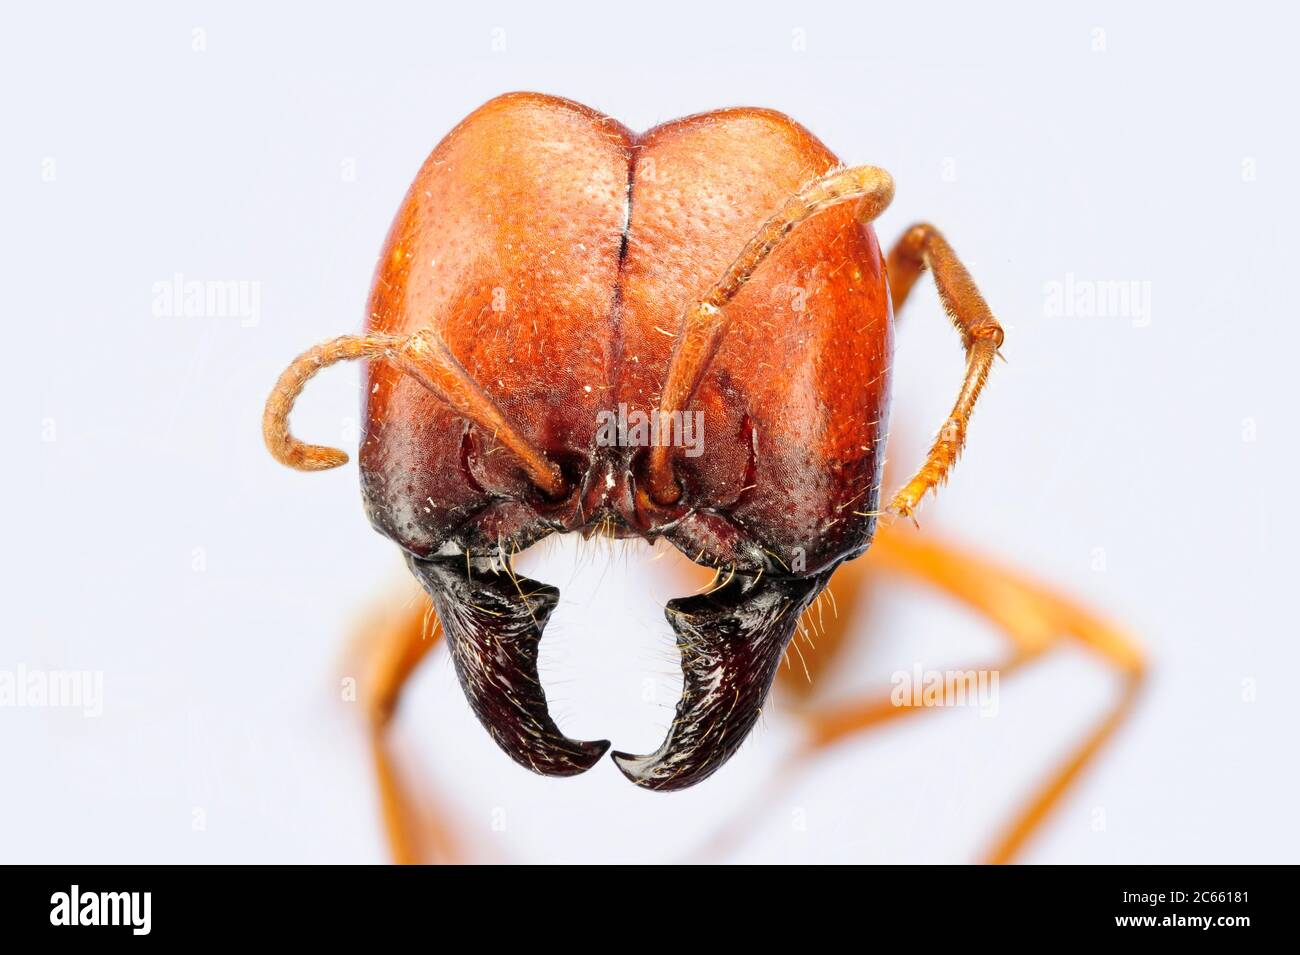 """[Digital focus stacking] Ant portrait, Labidus coecus, Picture was taken in cooperation with the """"Staatl. Museum für Naturkunde Karlsruhe"""". Stock Photo"""